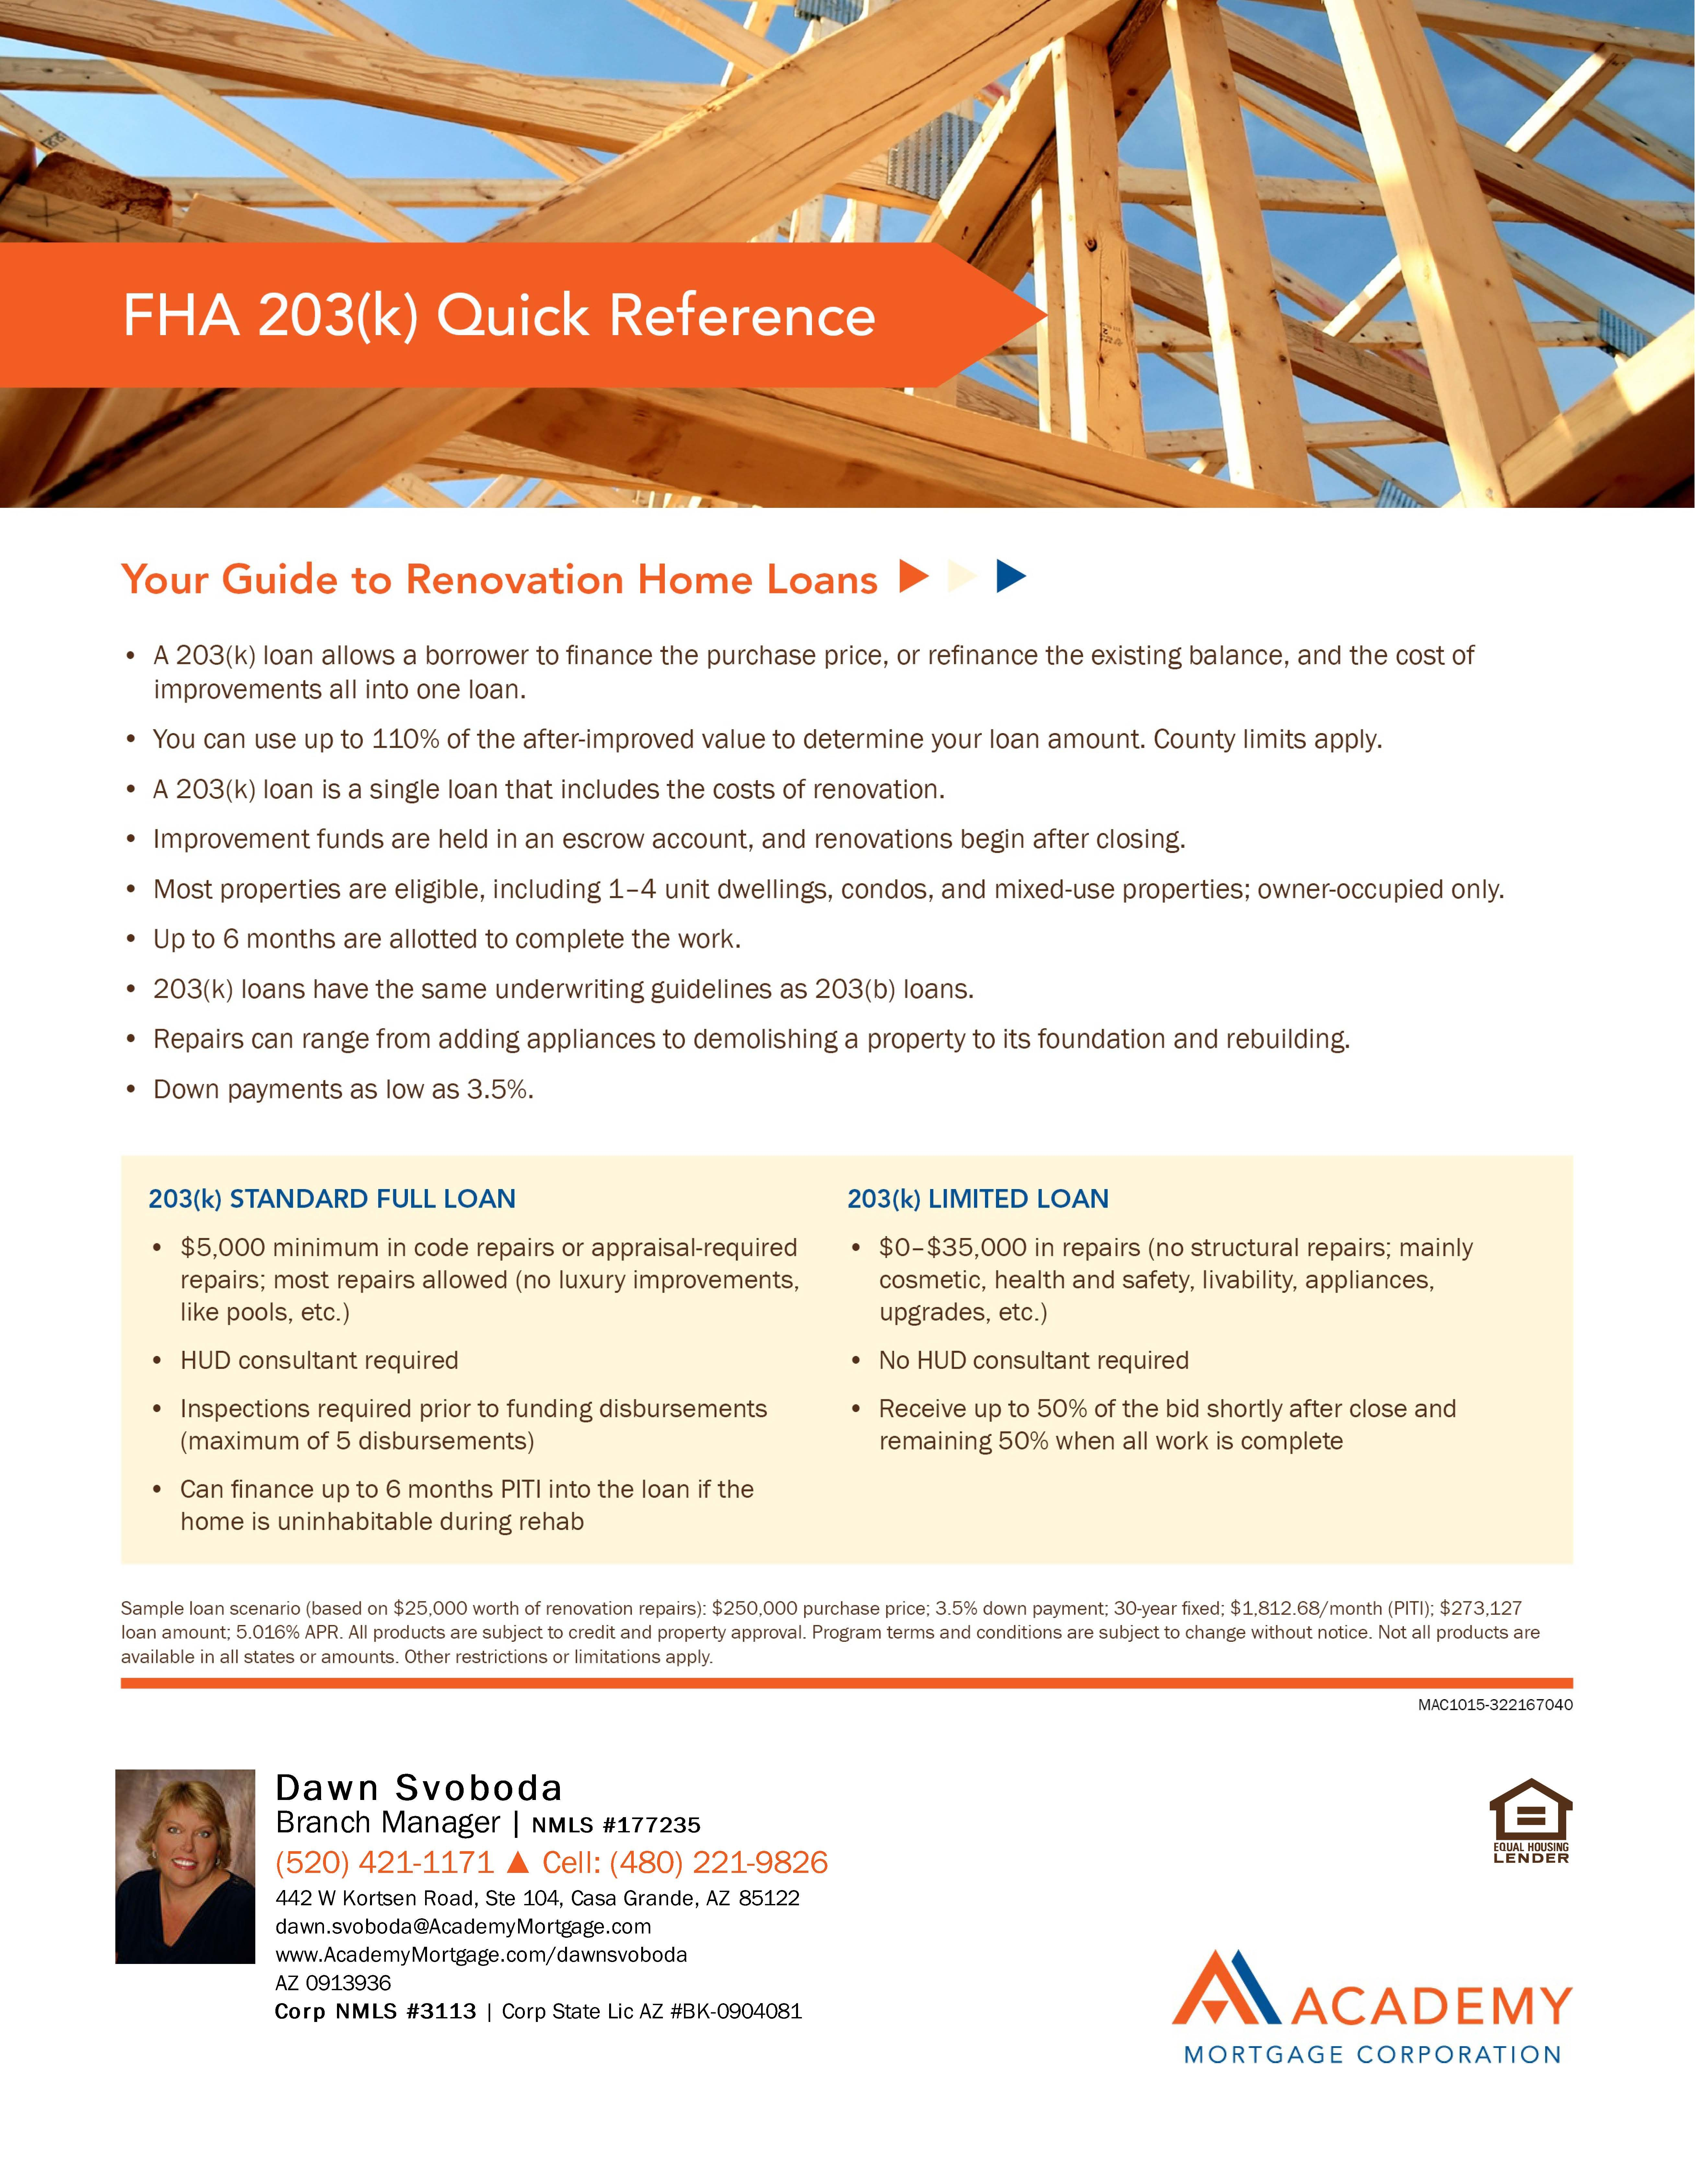 Fha 203k Quick Reference Home Renovation Loan Home Equity Line Home Equity Loan